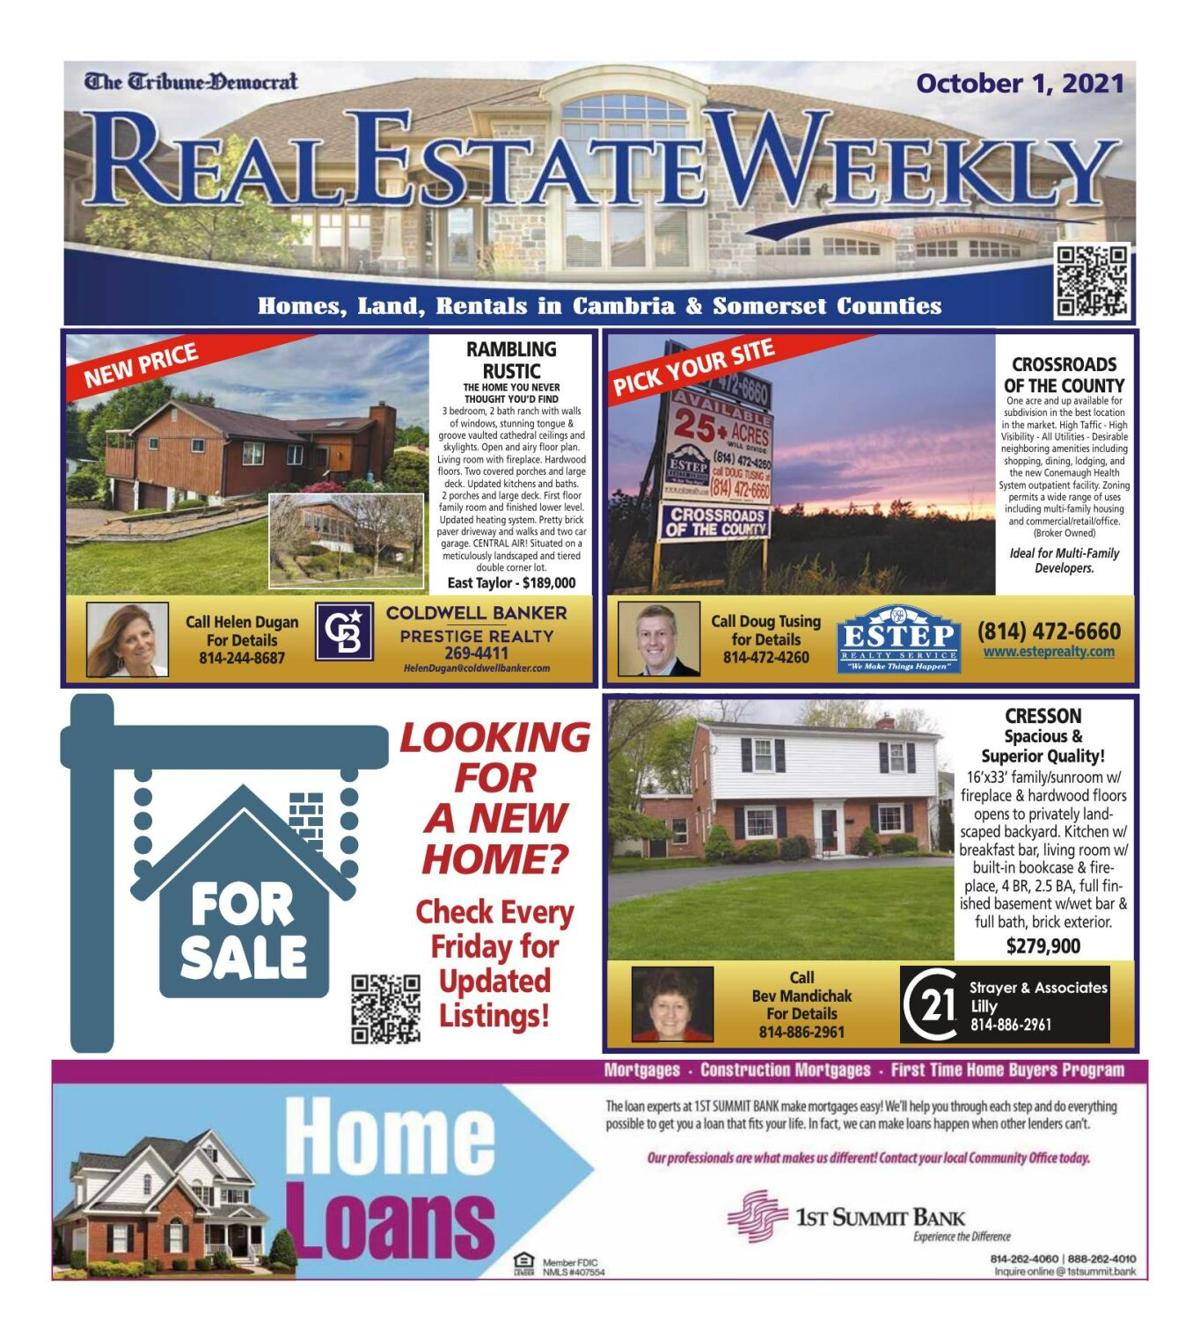 Real Estate Weekly October 1st, 2021